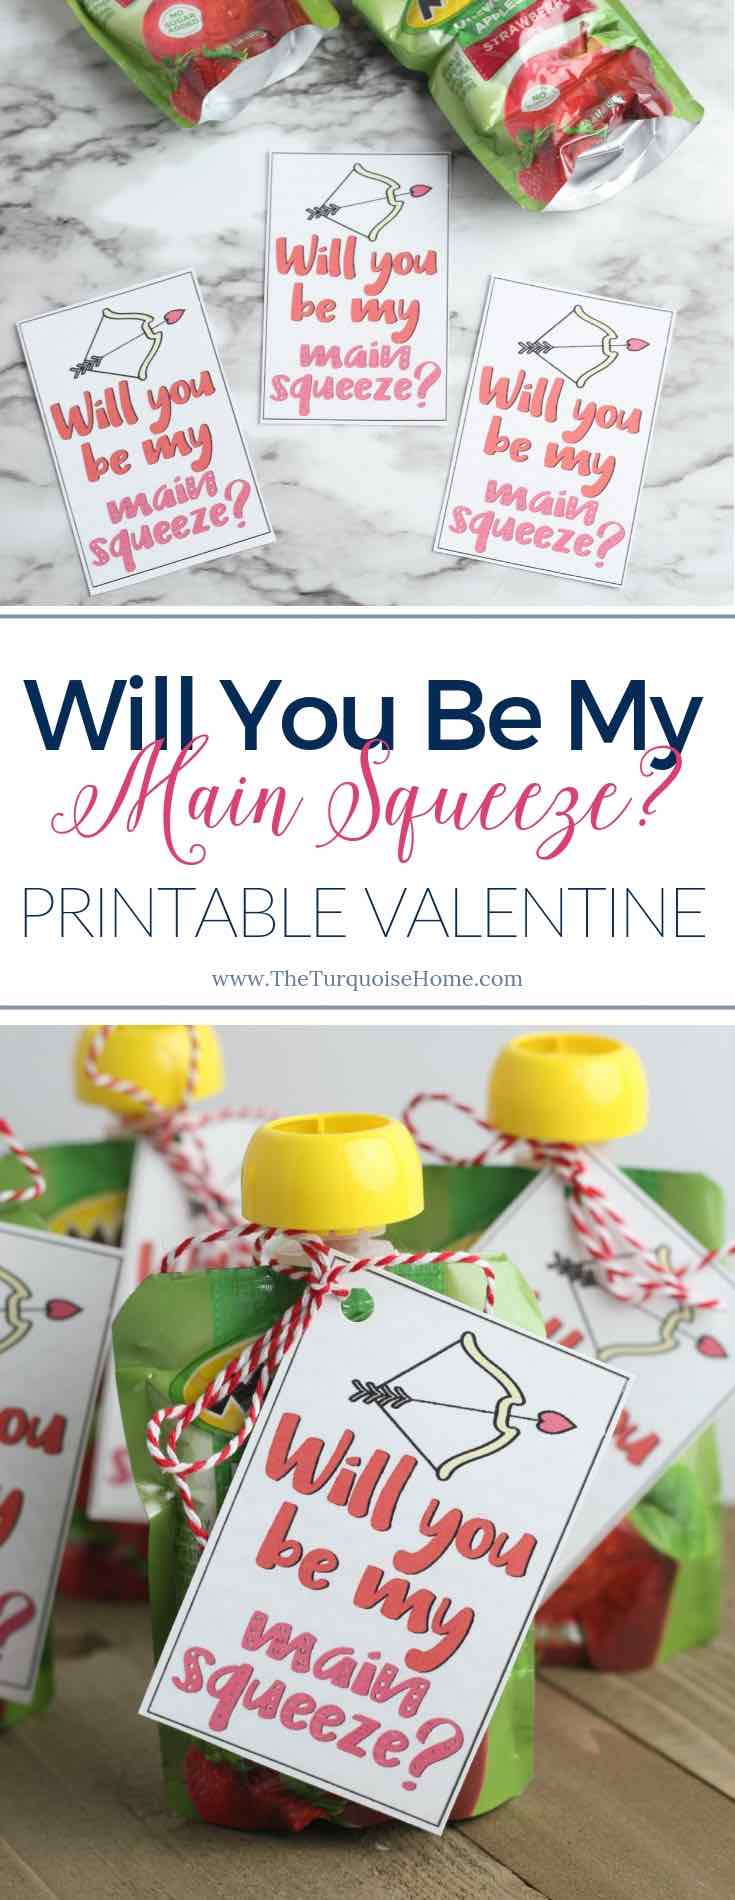 Will you be my Main Squeeze? Printable Valentine (for kids!)